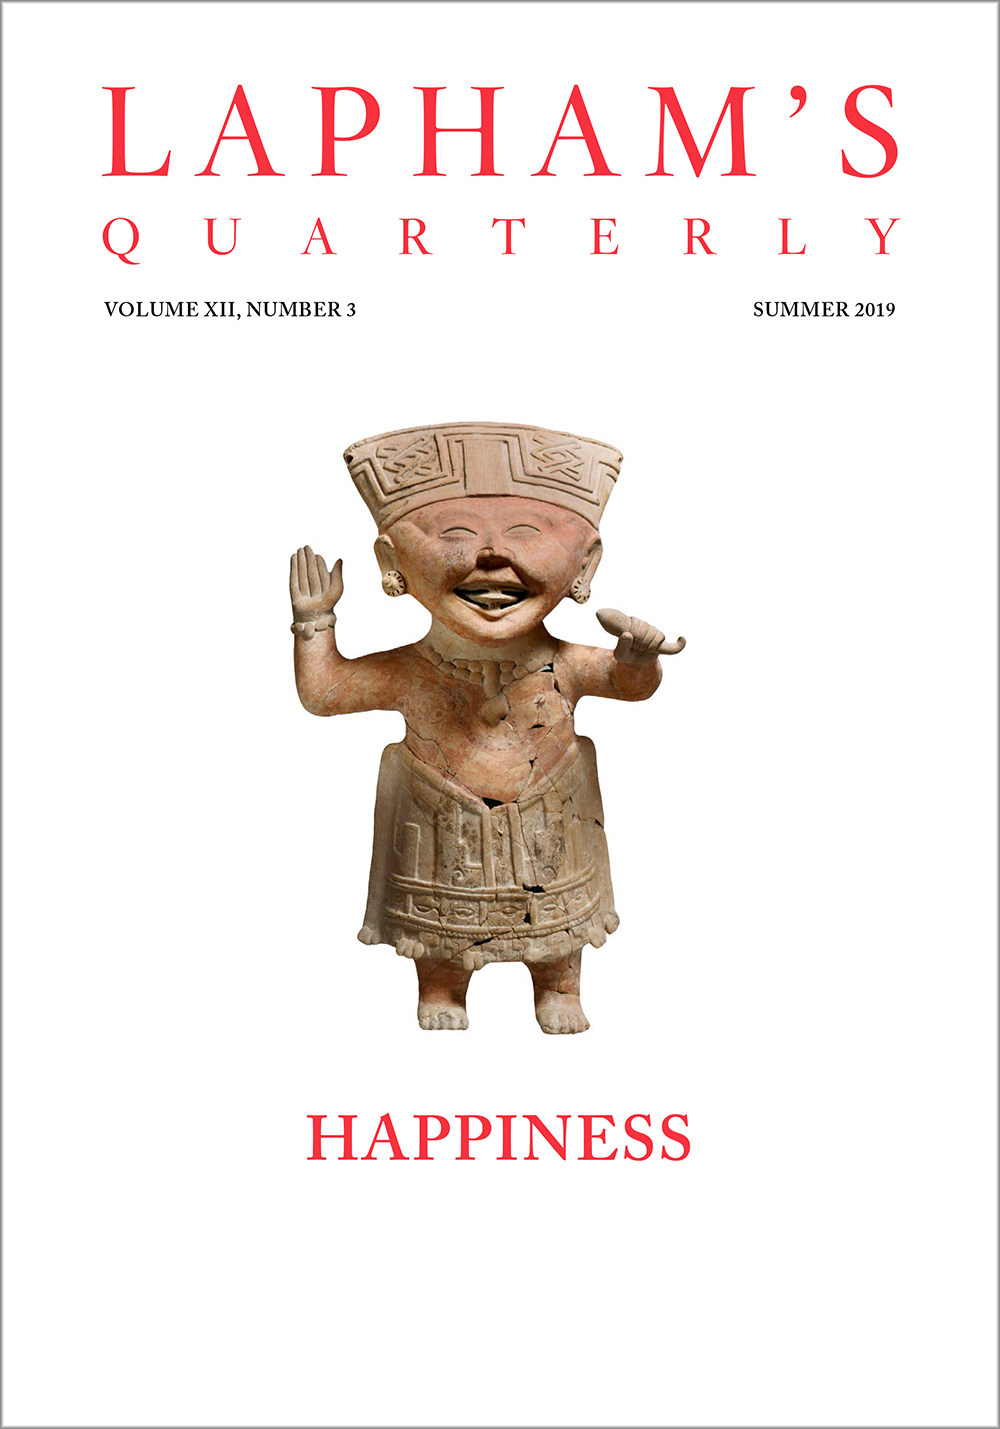 Happiness, the Summer 2019 issue of Lapham's Quarterly.